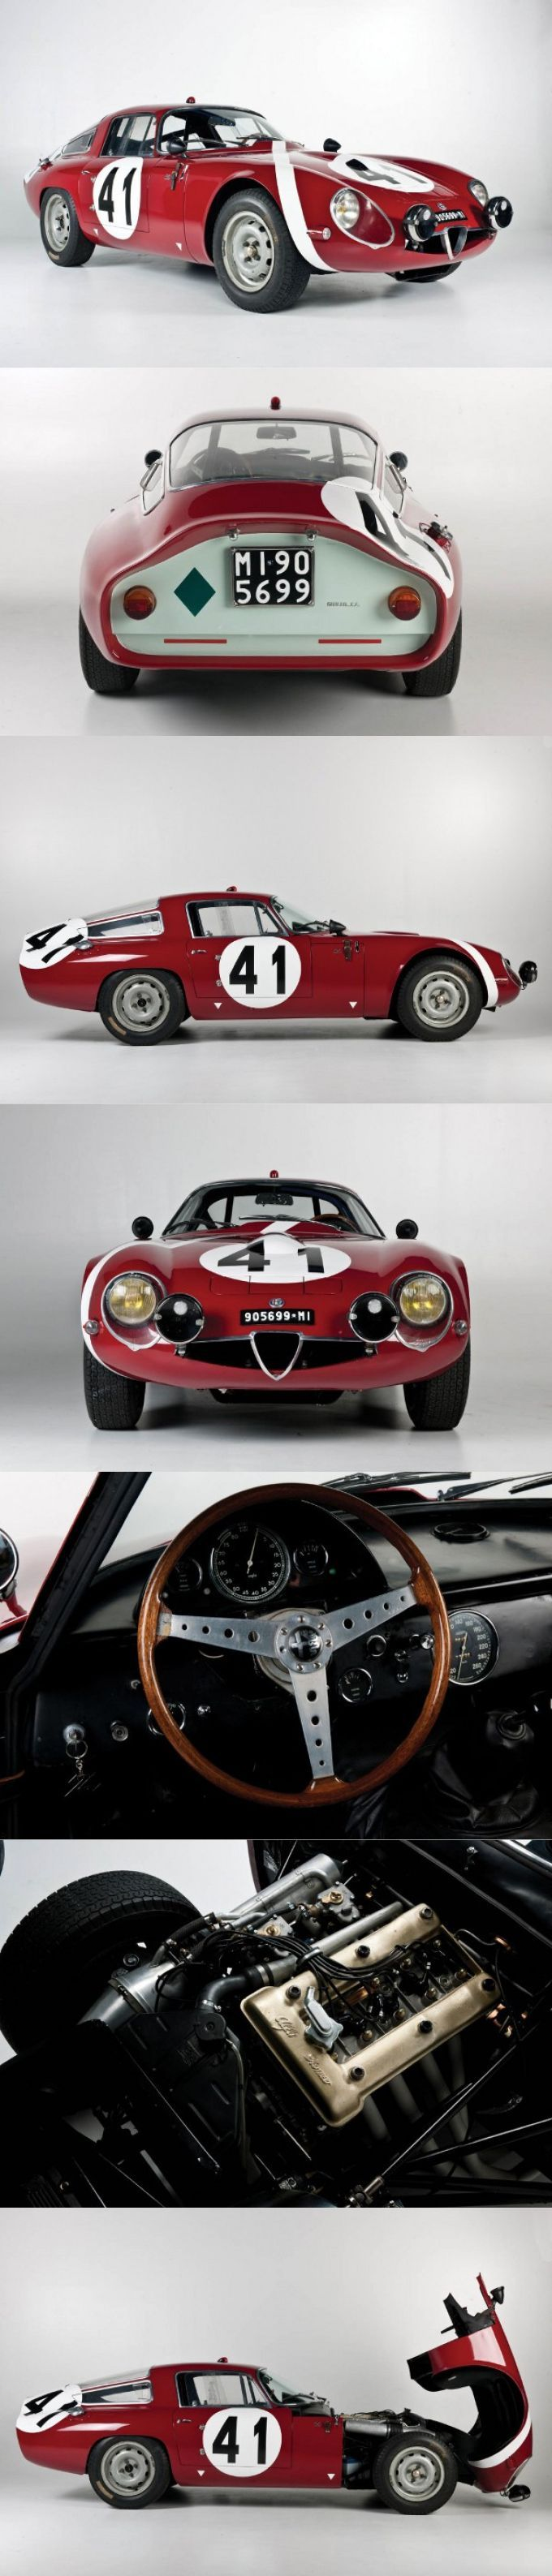 771 best Great Cars Overview images on Pinterest